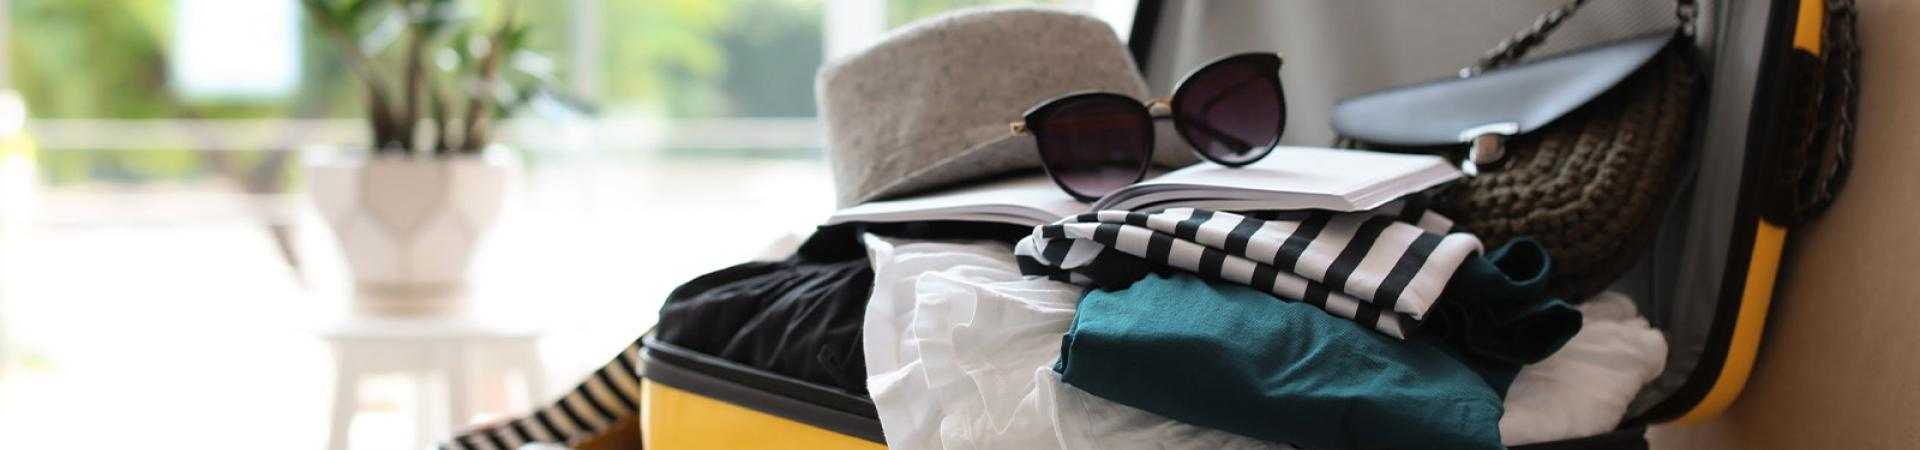 An open yellow suitcase with clothes, a hat and sunglasses inside